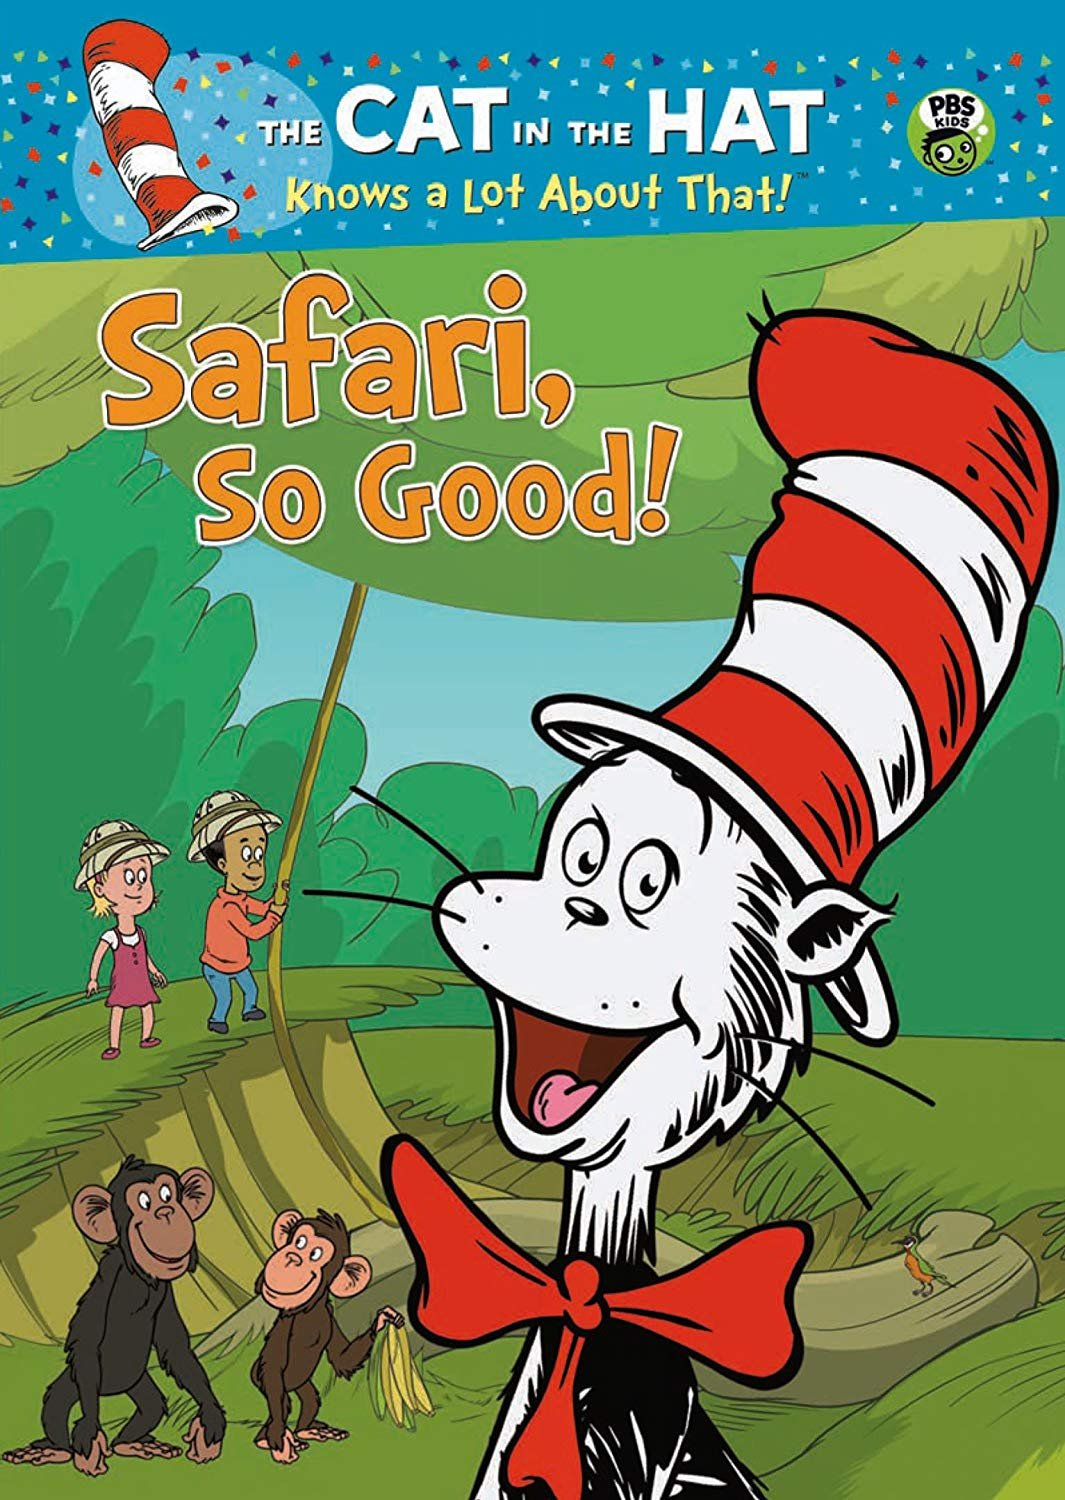 Cat in the Hat Knows a Lot About That!: Safari So Good DVD (dv 001)